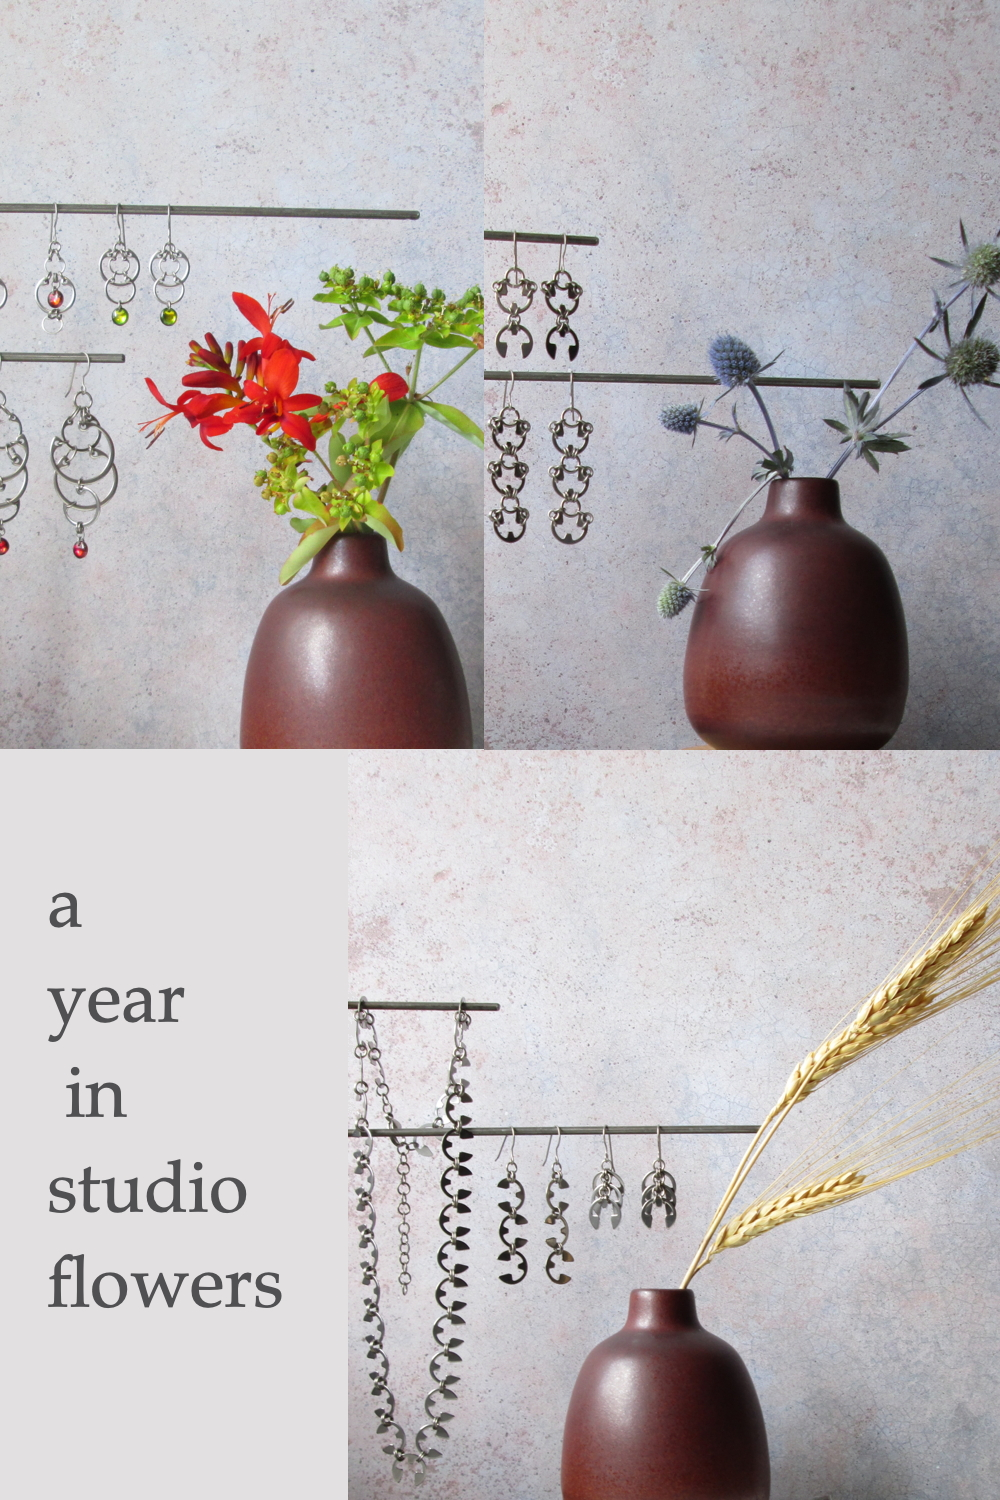 "4 photos of small modern flower arrangements and Wraptillion jewelry from Wraptillion's studio flowers series, with dried wheat, sea holly, red crocosmia, and euphorbia; text on image reads ""a year in studio flowers'"